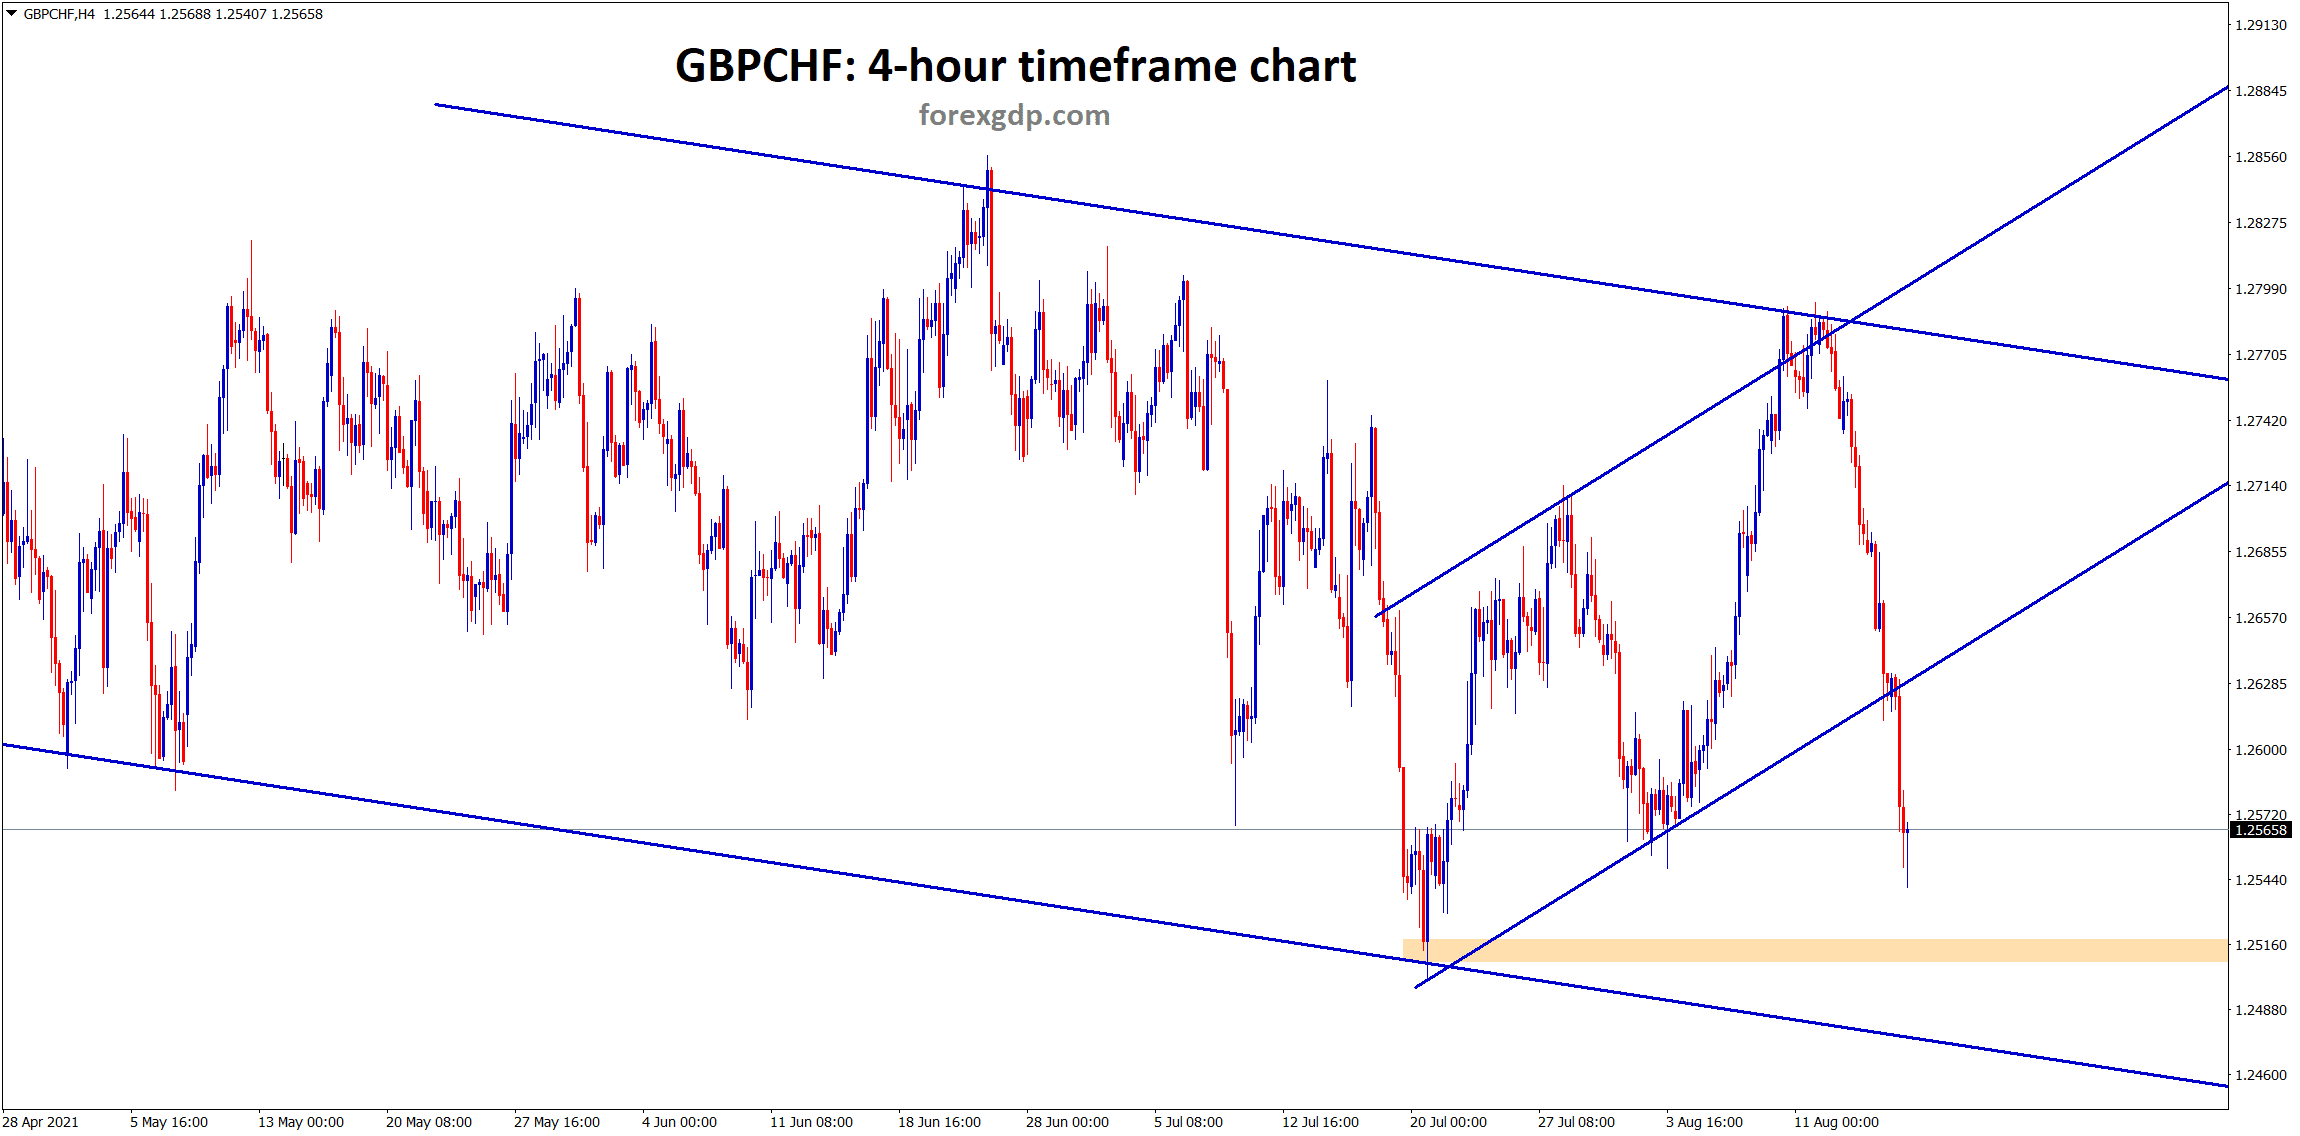 GBPCHF is moving in a downtrend range